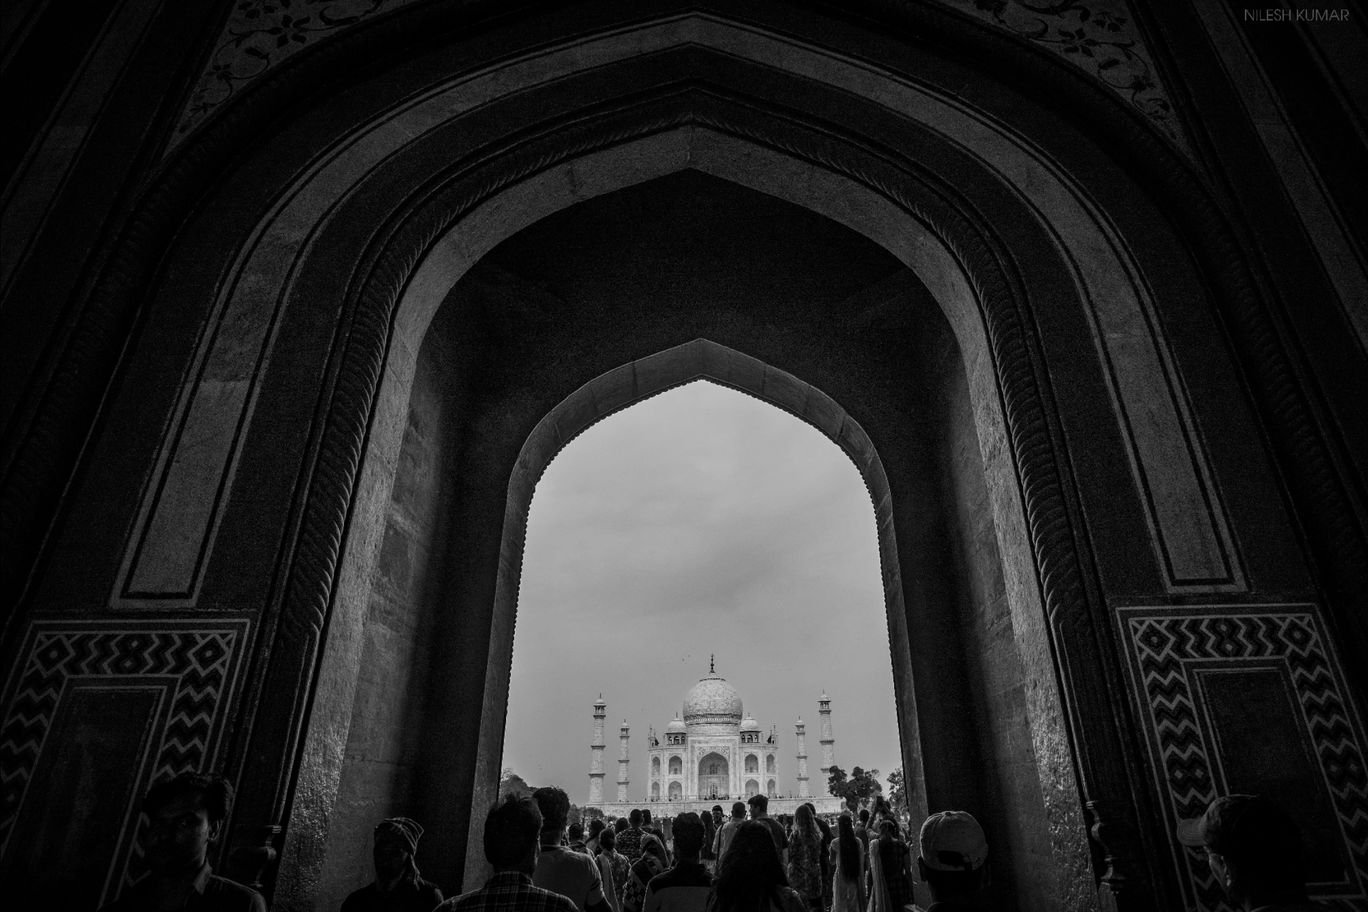 Photo of Agra By Níl Esh